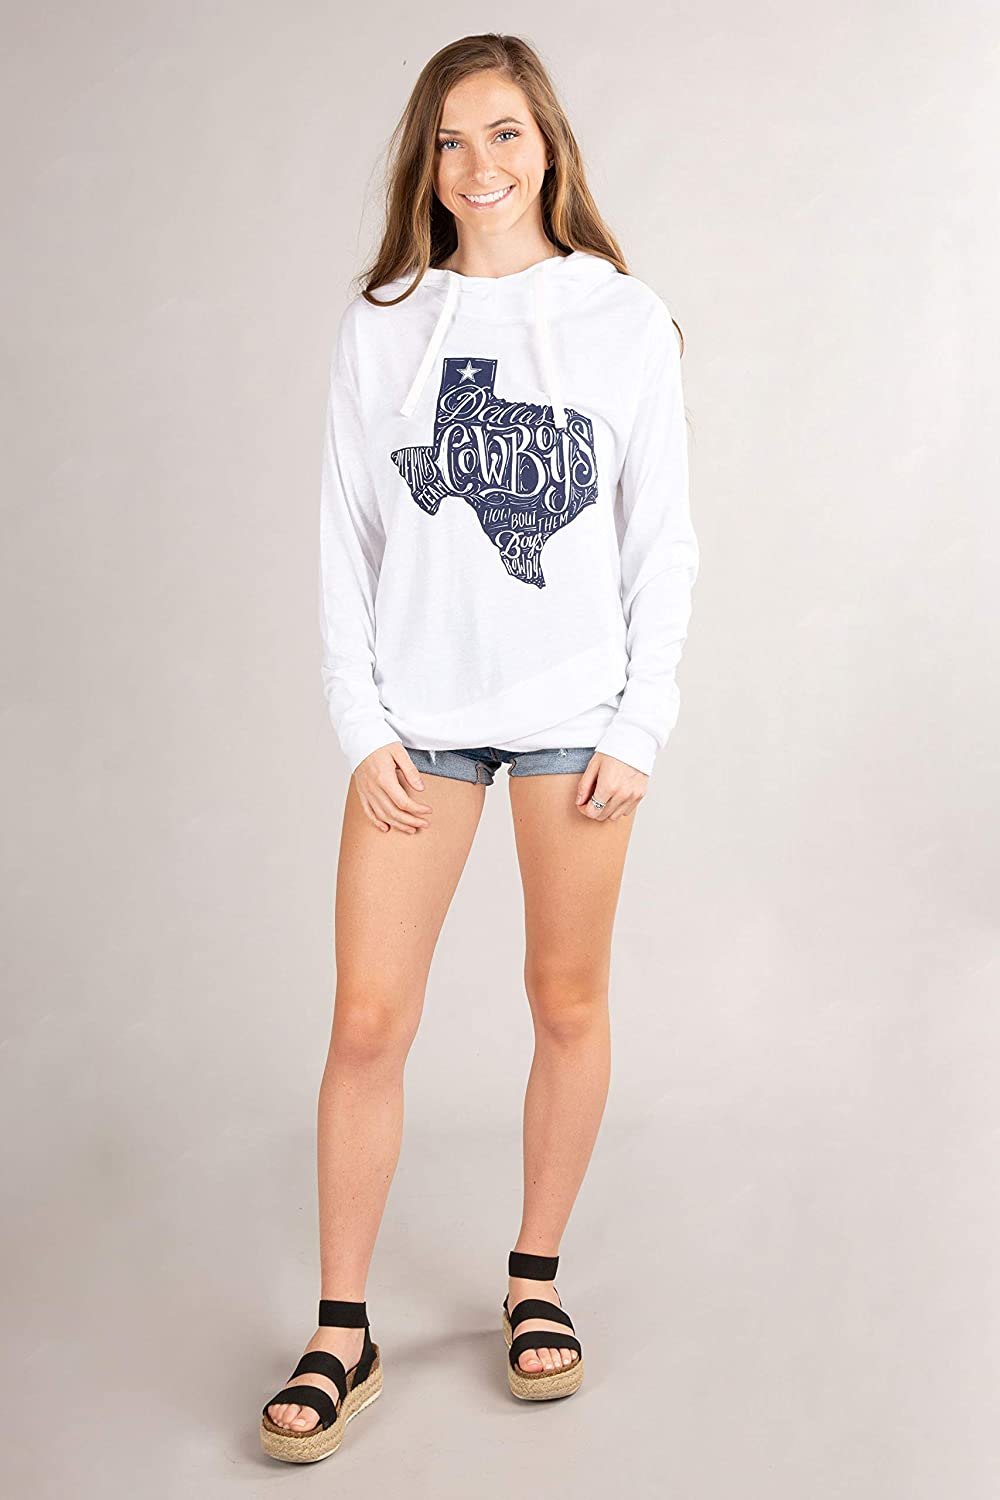 Dallas Cowboys Women's State Hooded Mayhem Tee OFFicial All items in the store site